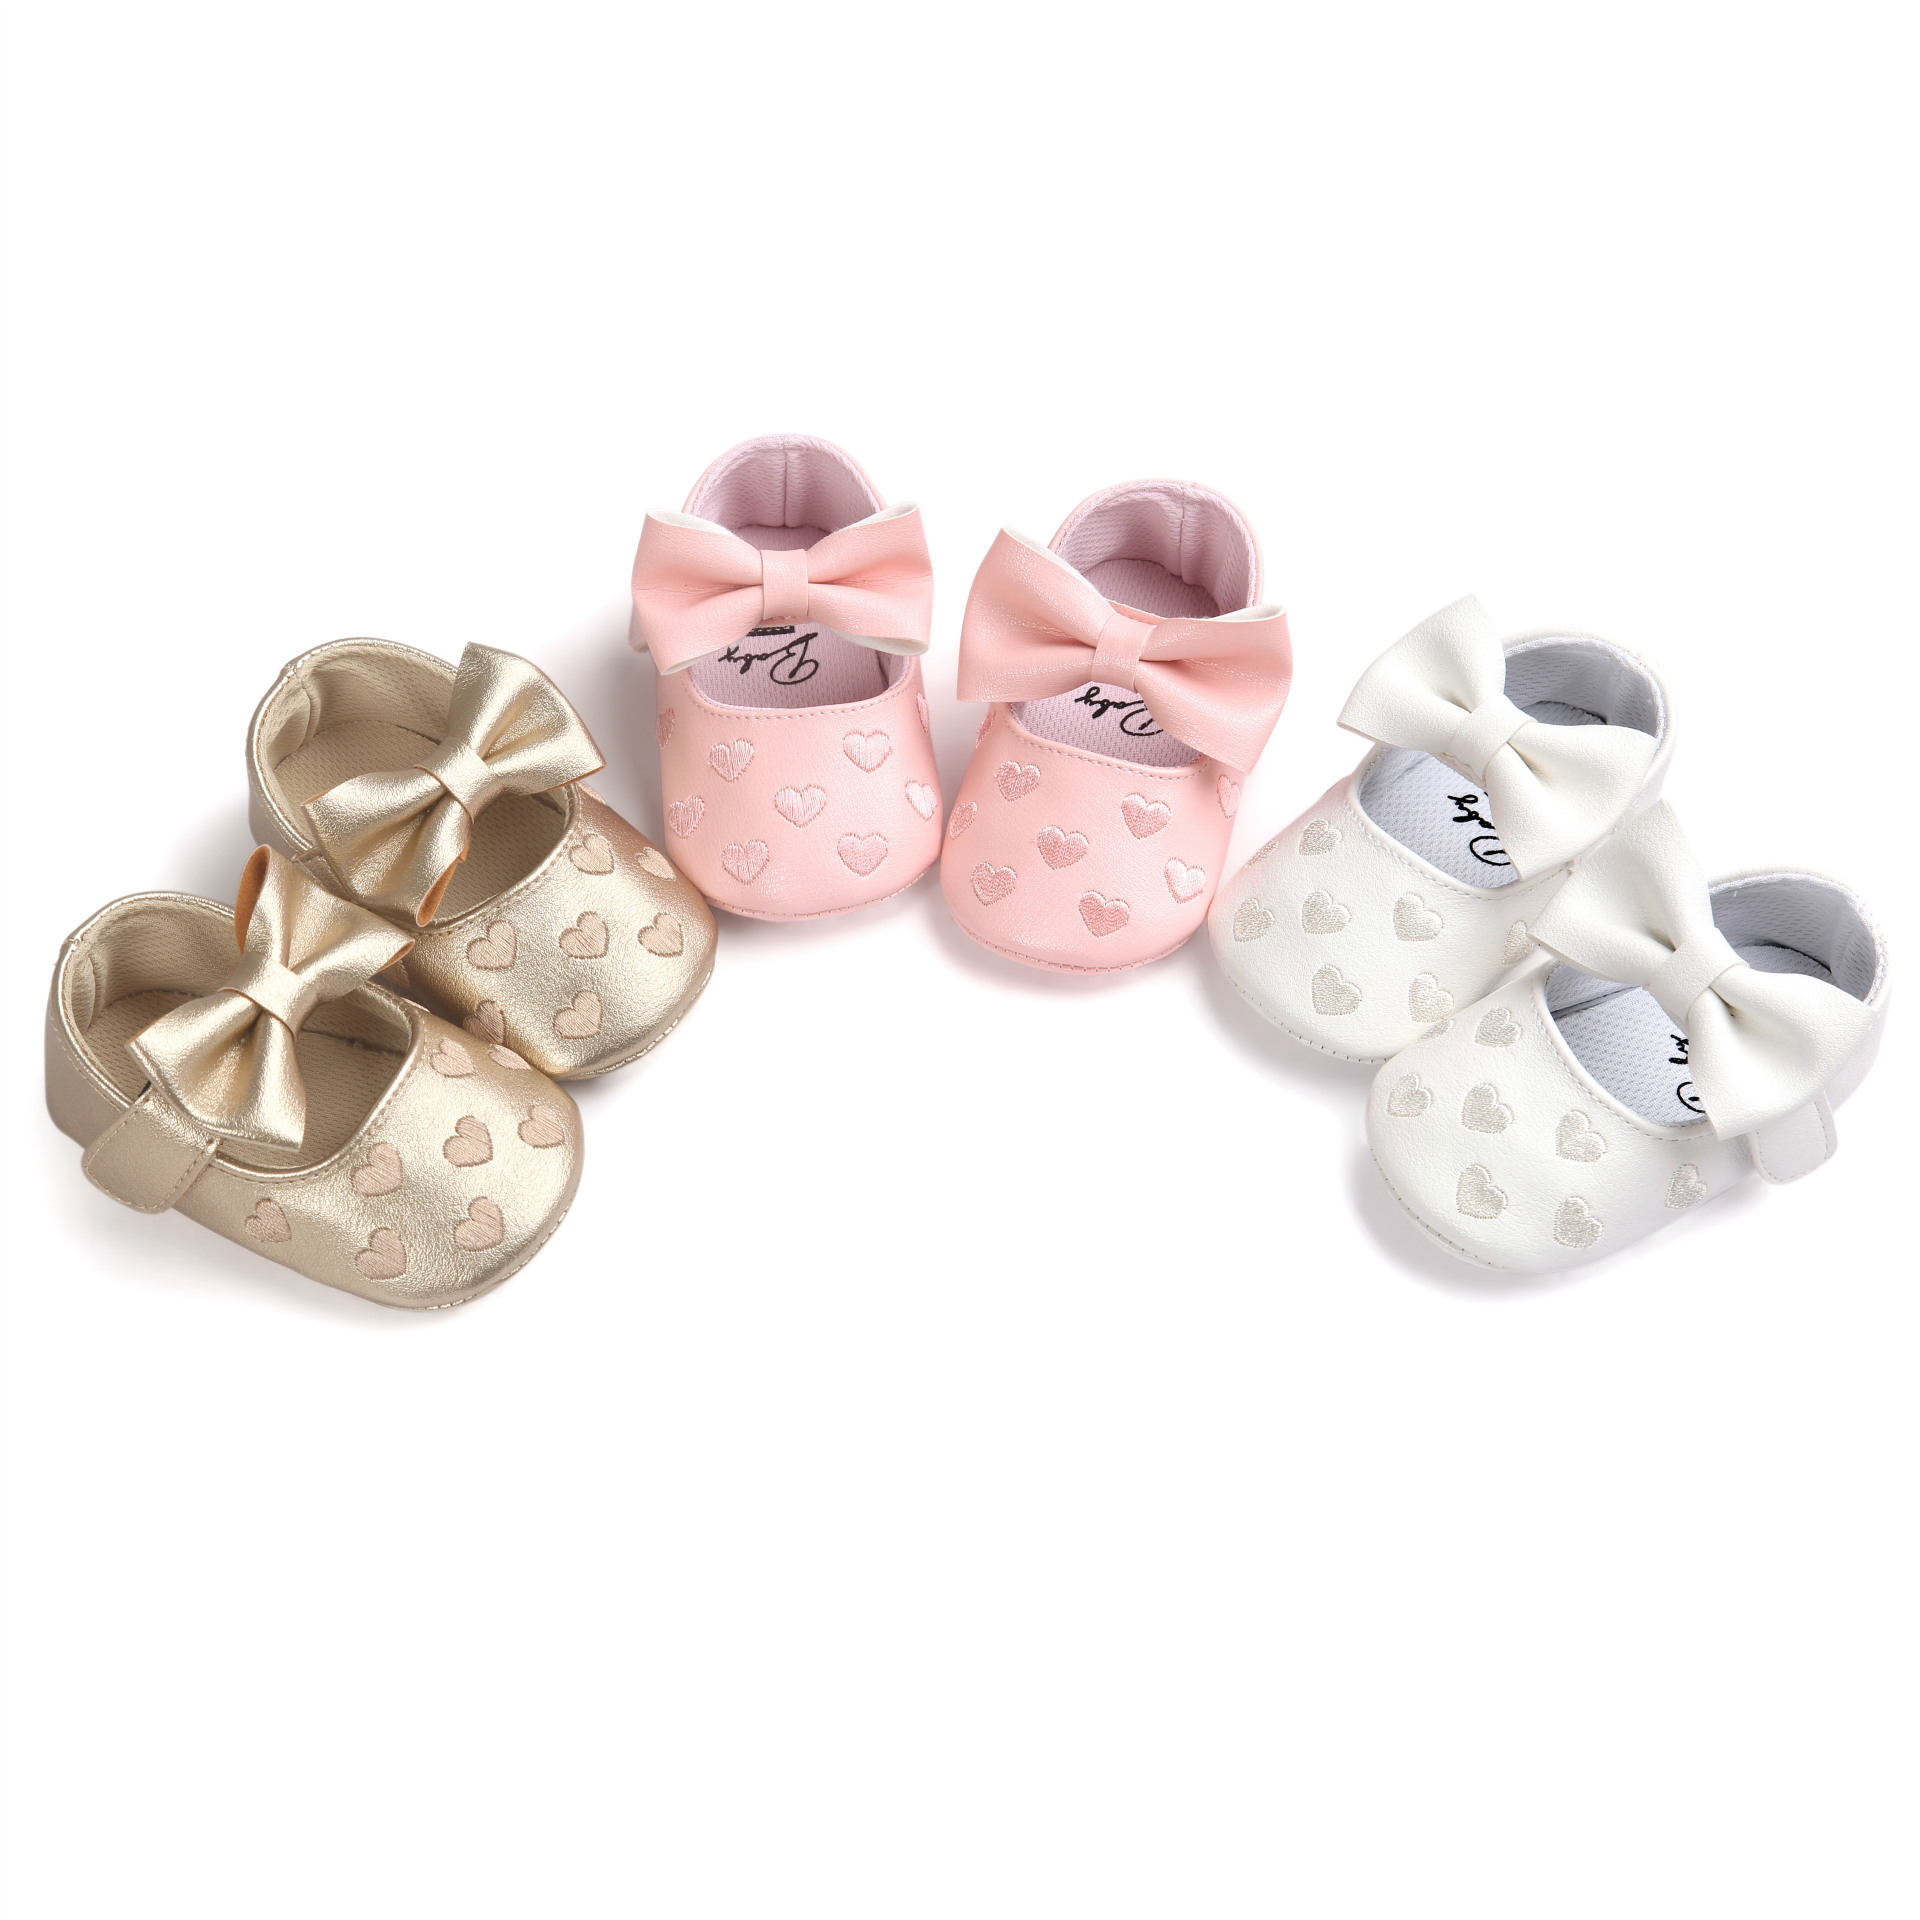 Newborn Baby Shoes 2018 Fashion Kids Baby Girls PU Leather First Walkers Cute Non-slip Shoes Infant Girl First Walkers